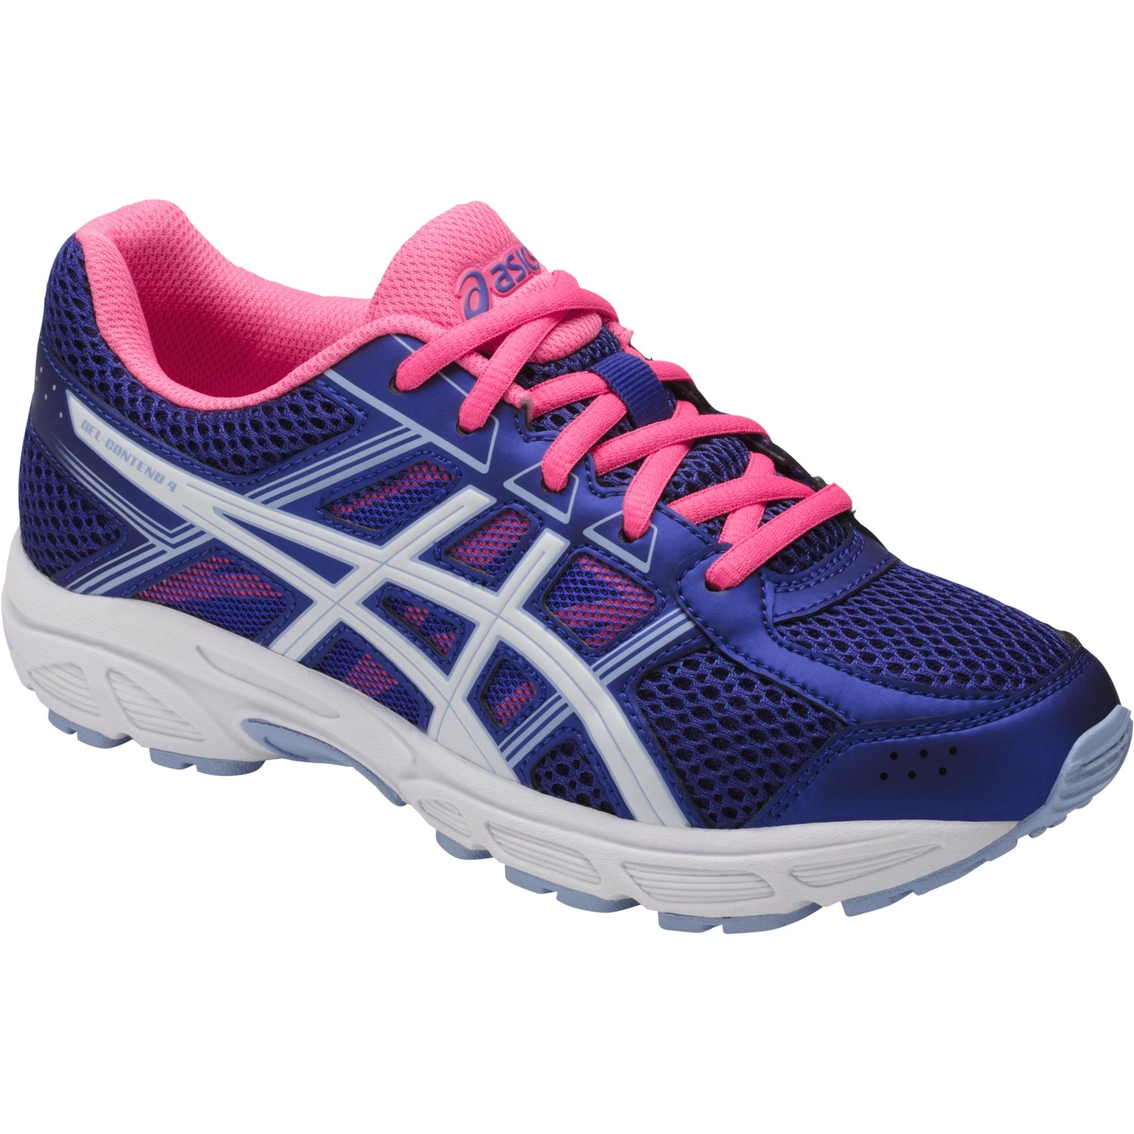 dbe756f424fe Asics Grade School Girls Gel-contend 4 Running Shoes